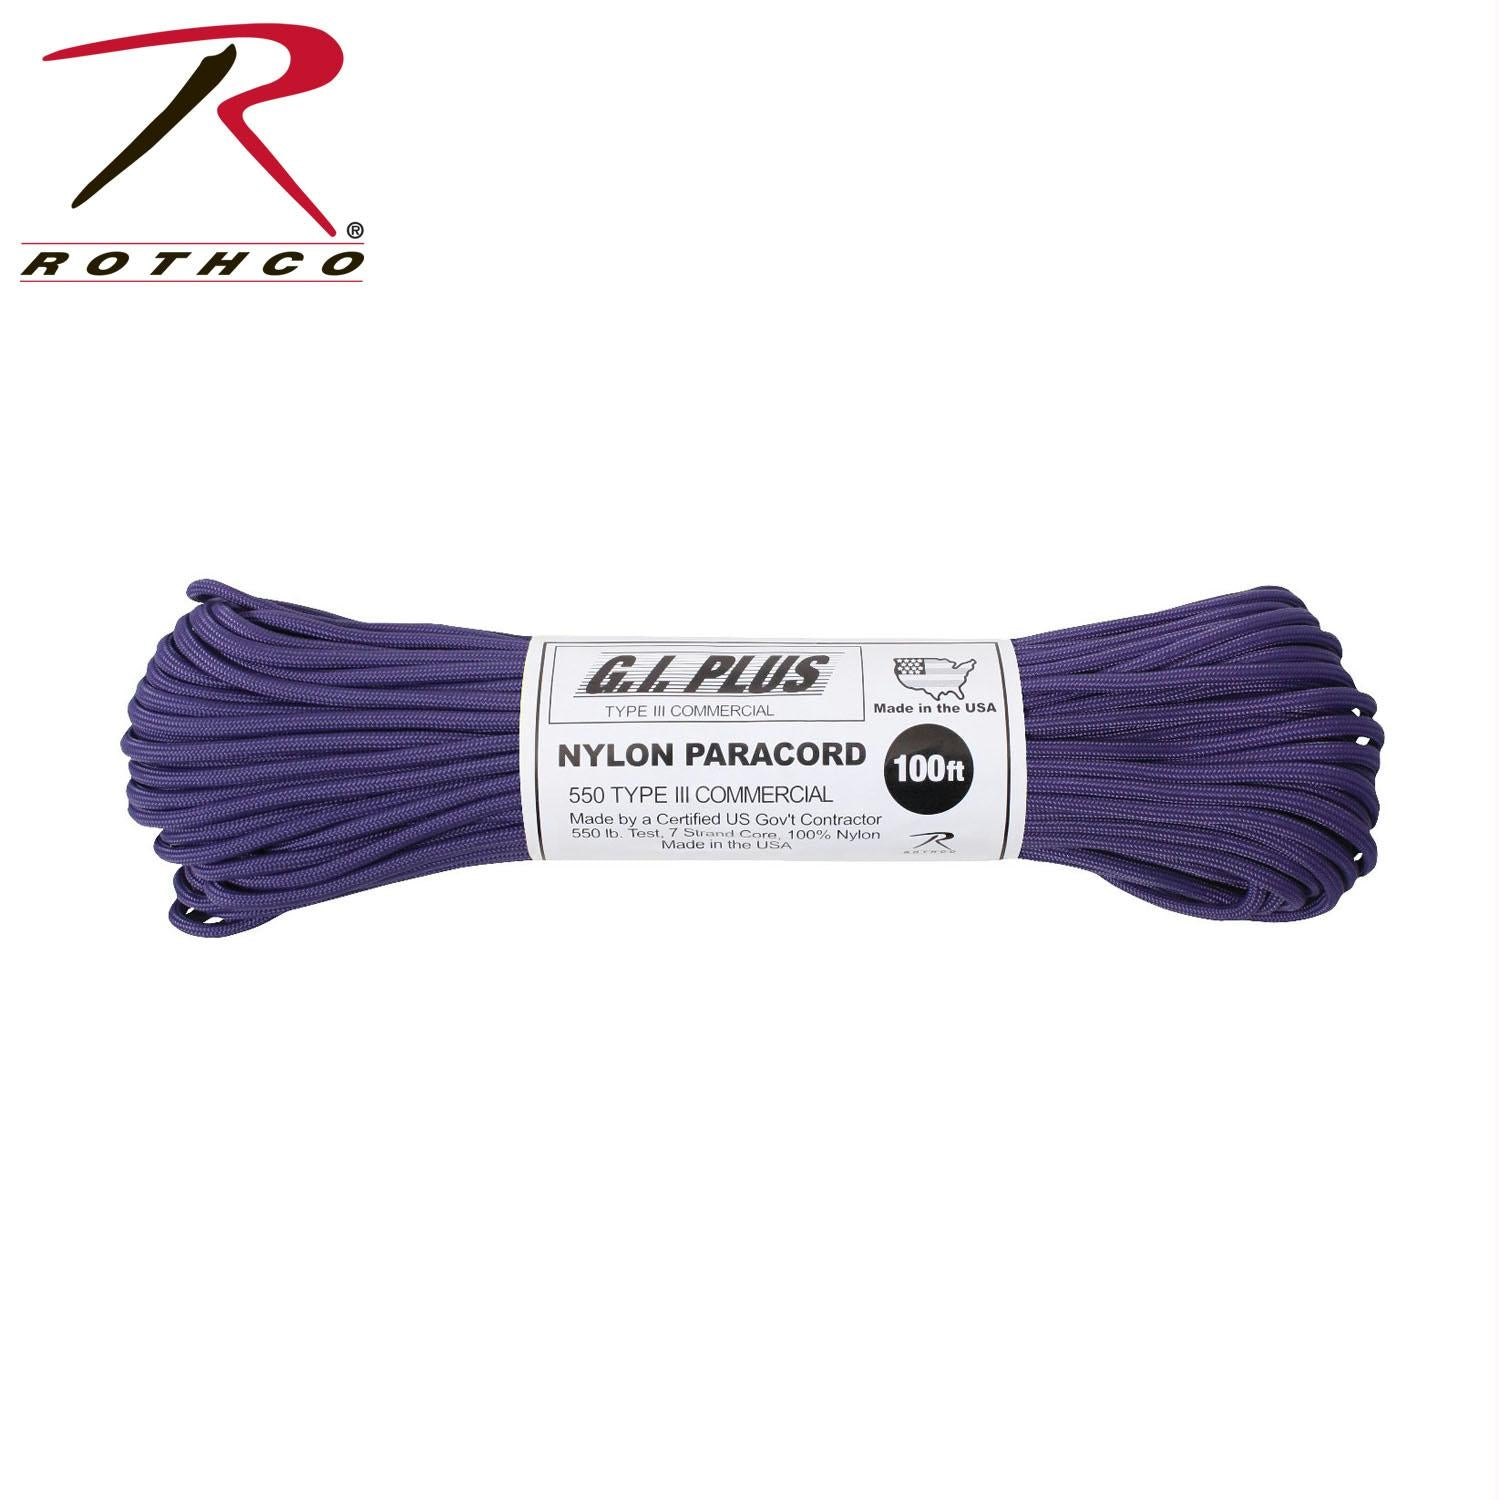 Rothco Nylon Paracord Type III 550 LB 100FT - Purple